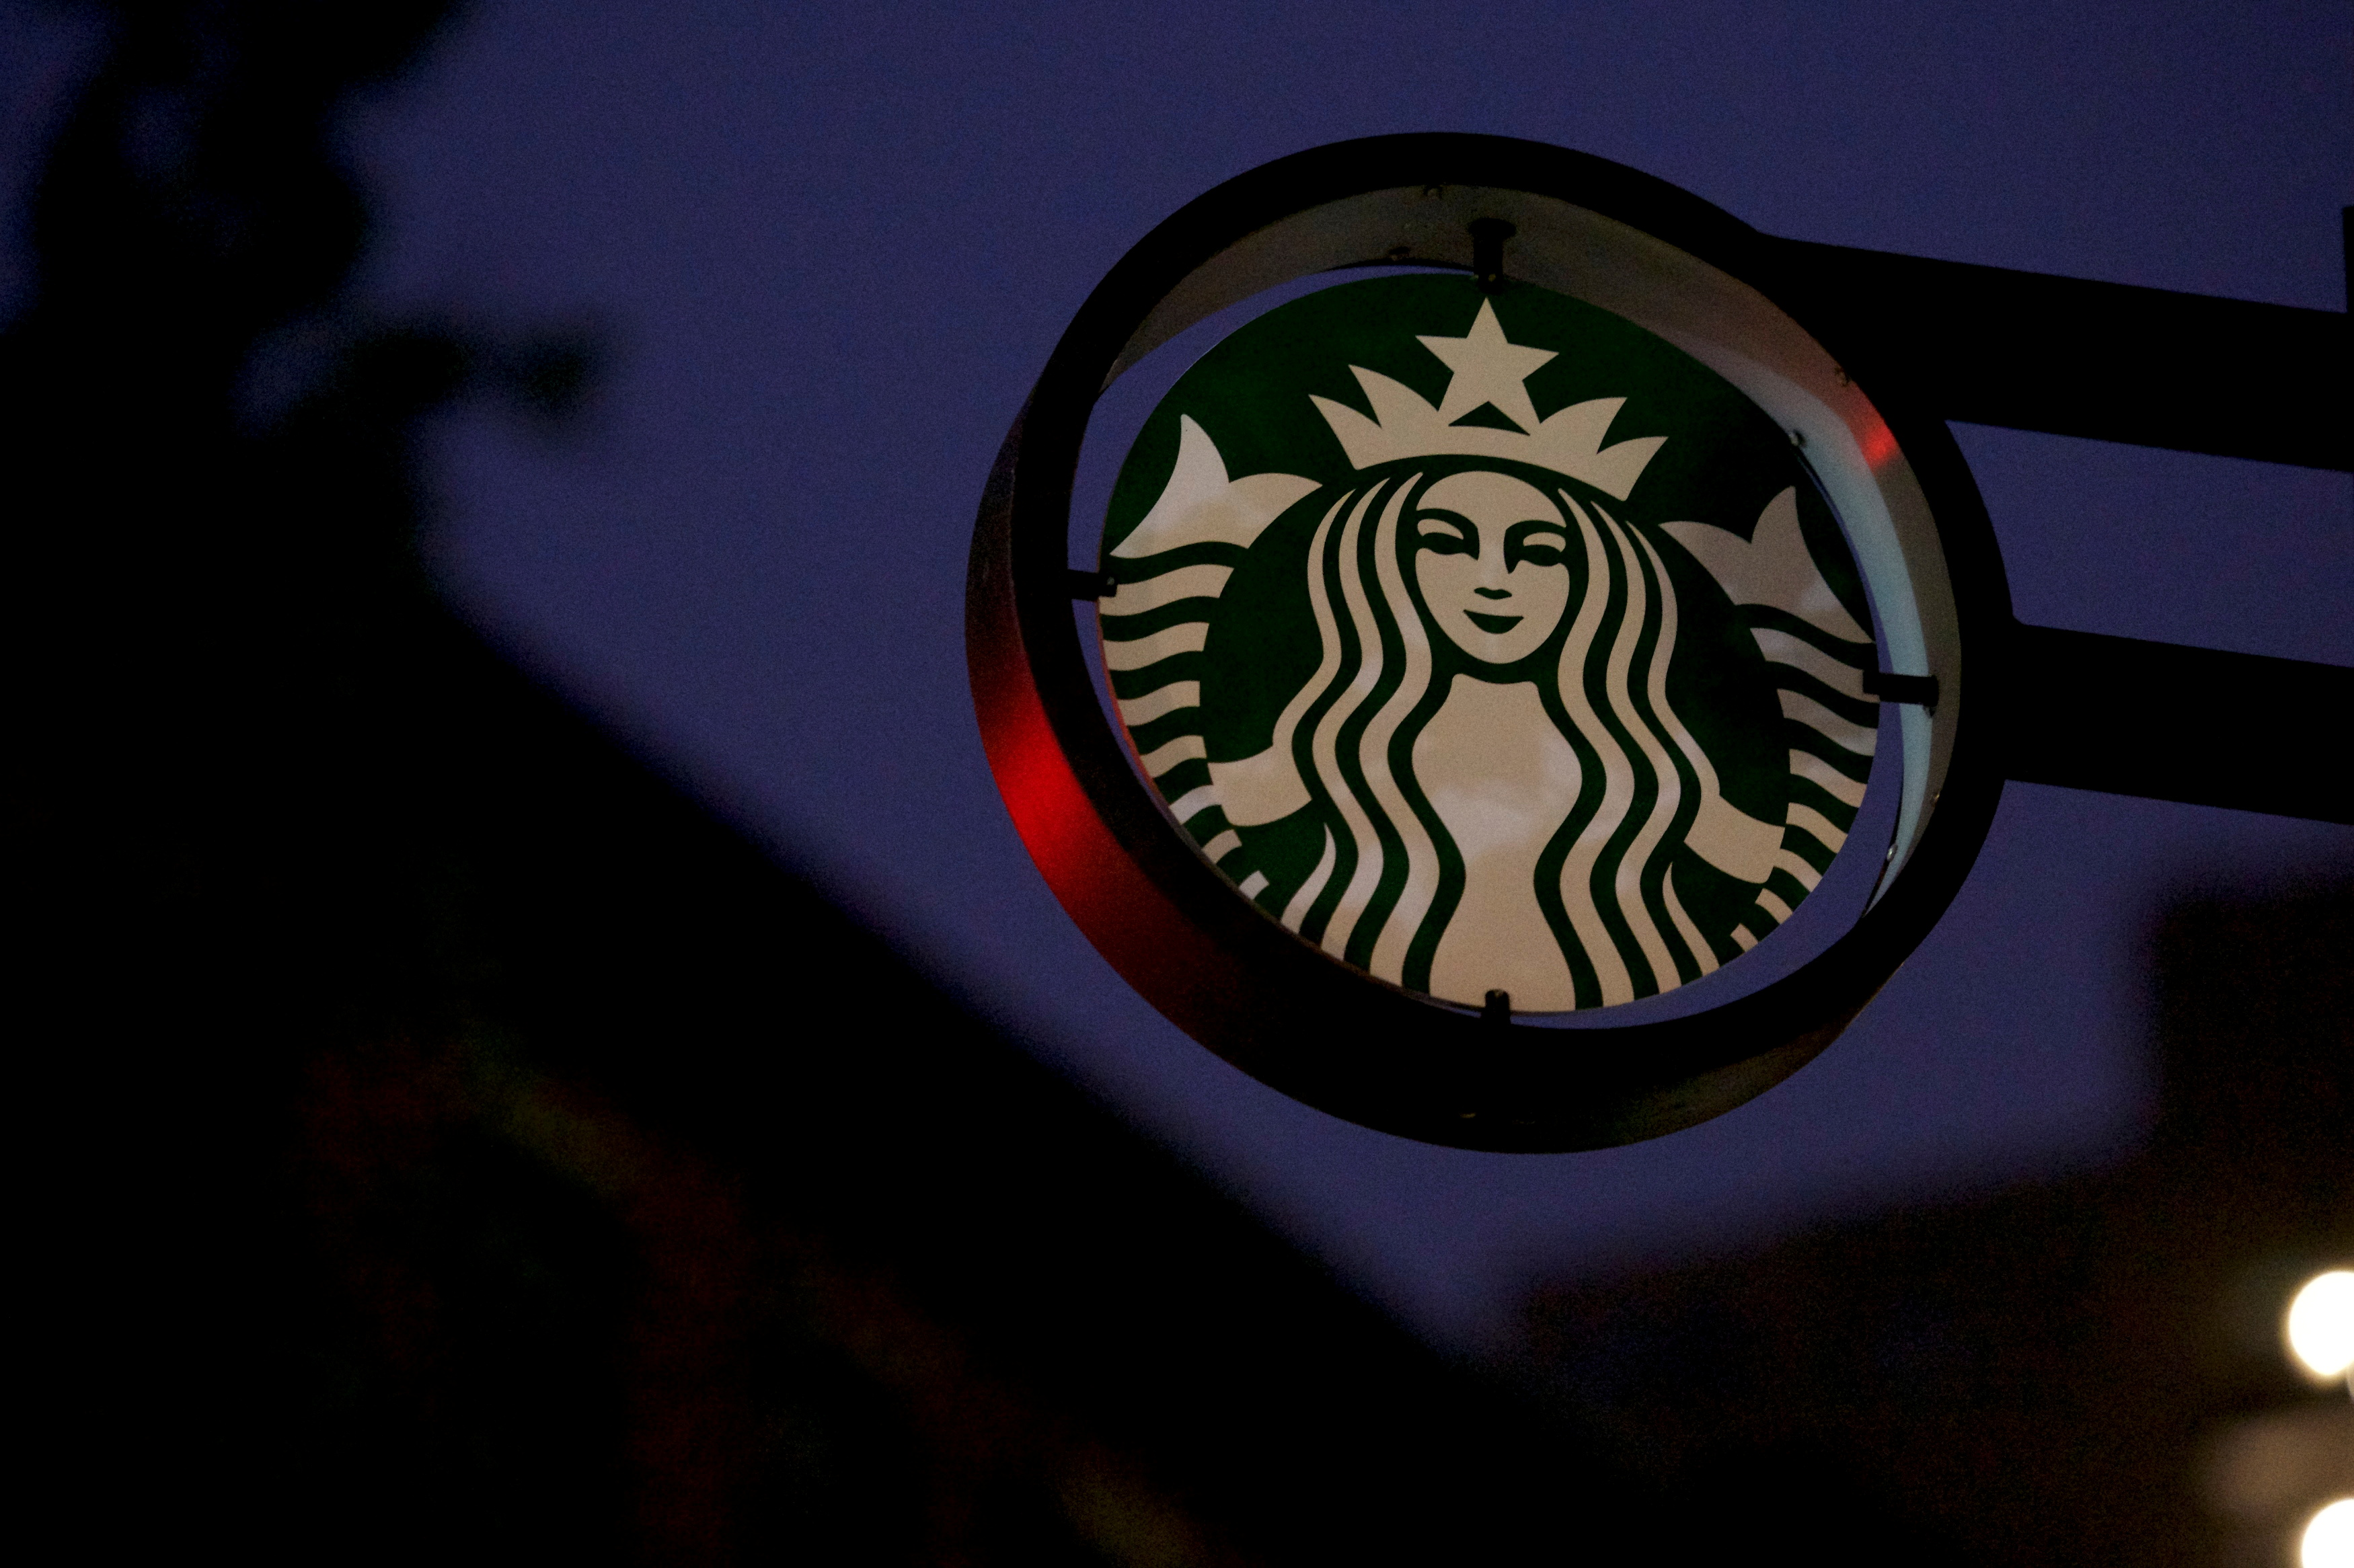 Starbucks seeks approval for stadium naming rights